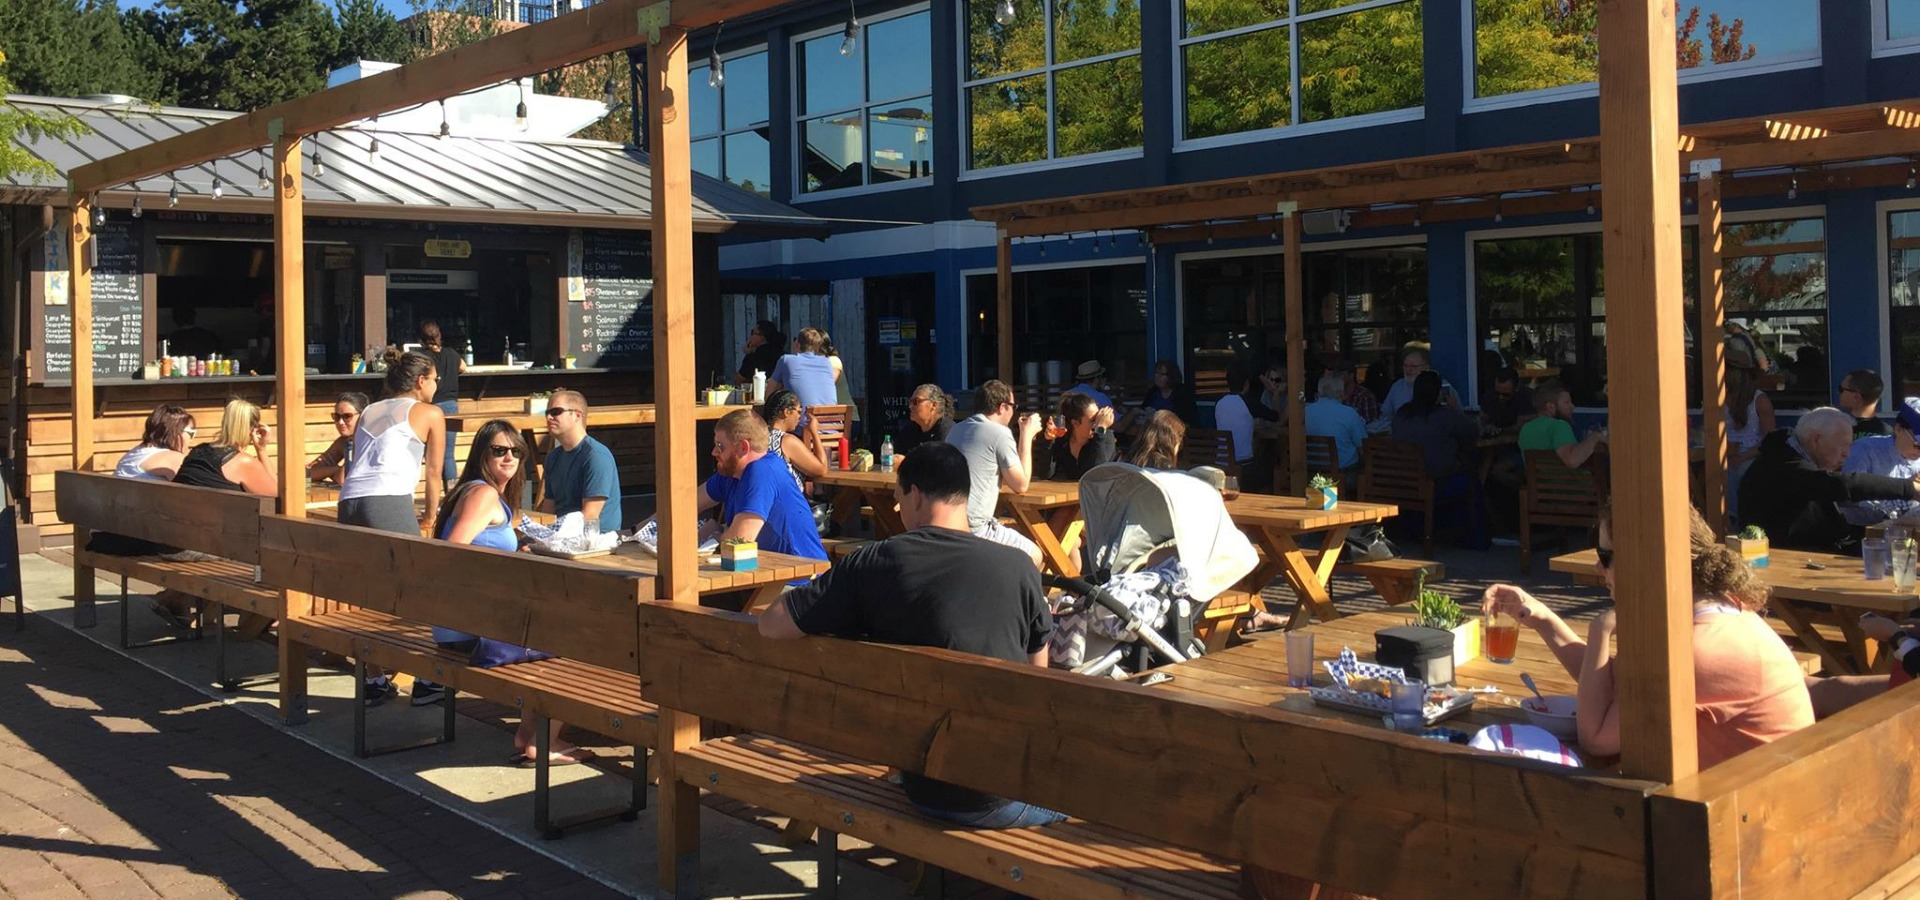 people eating outdoors at The White Swan Public House